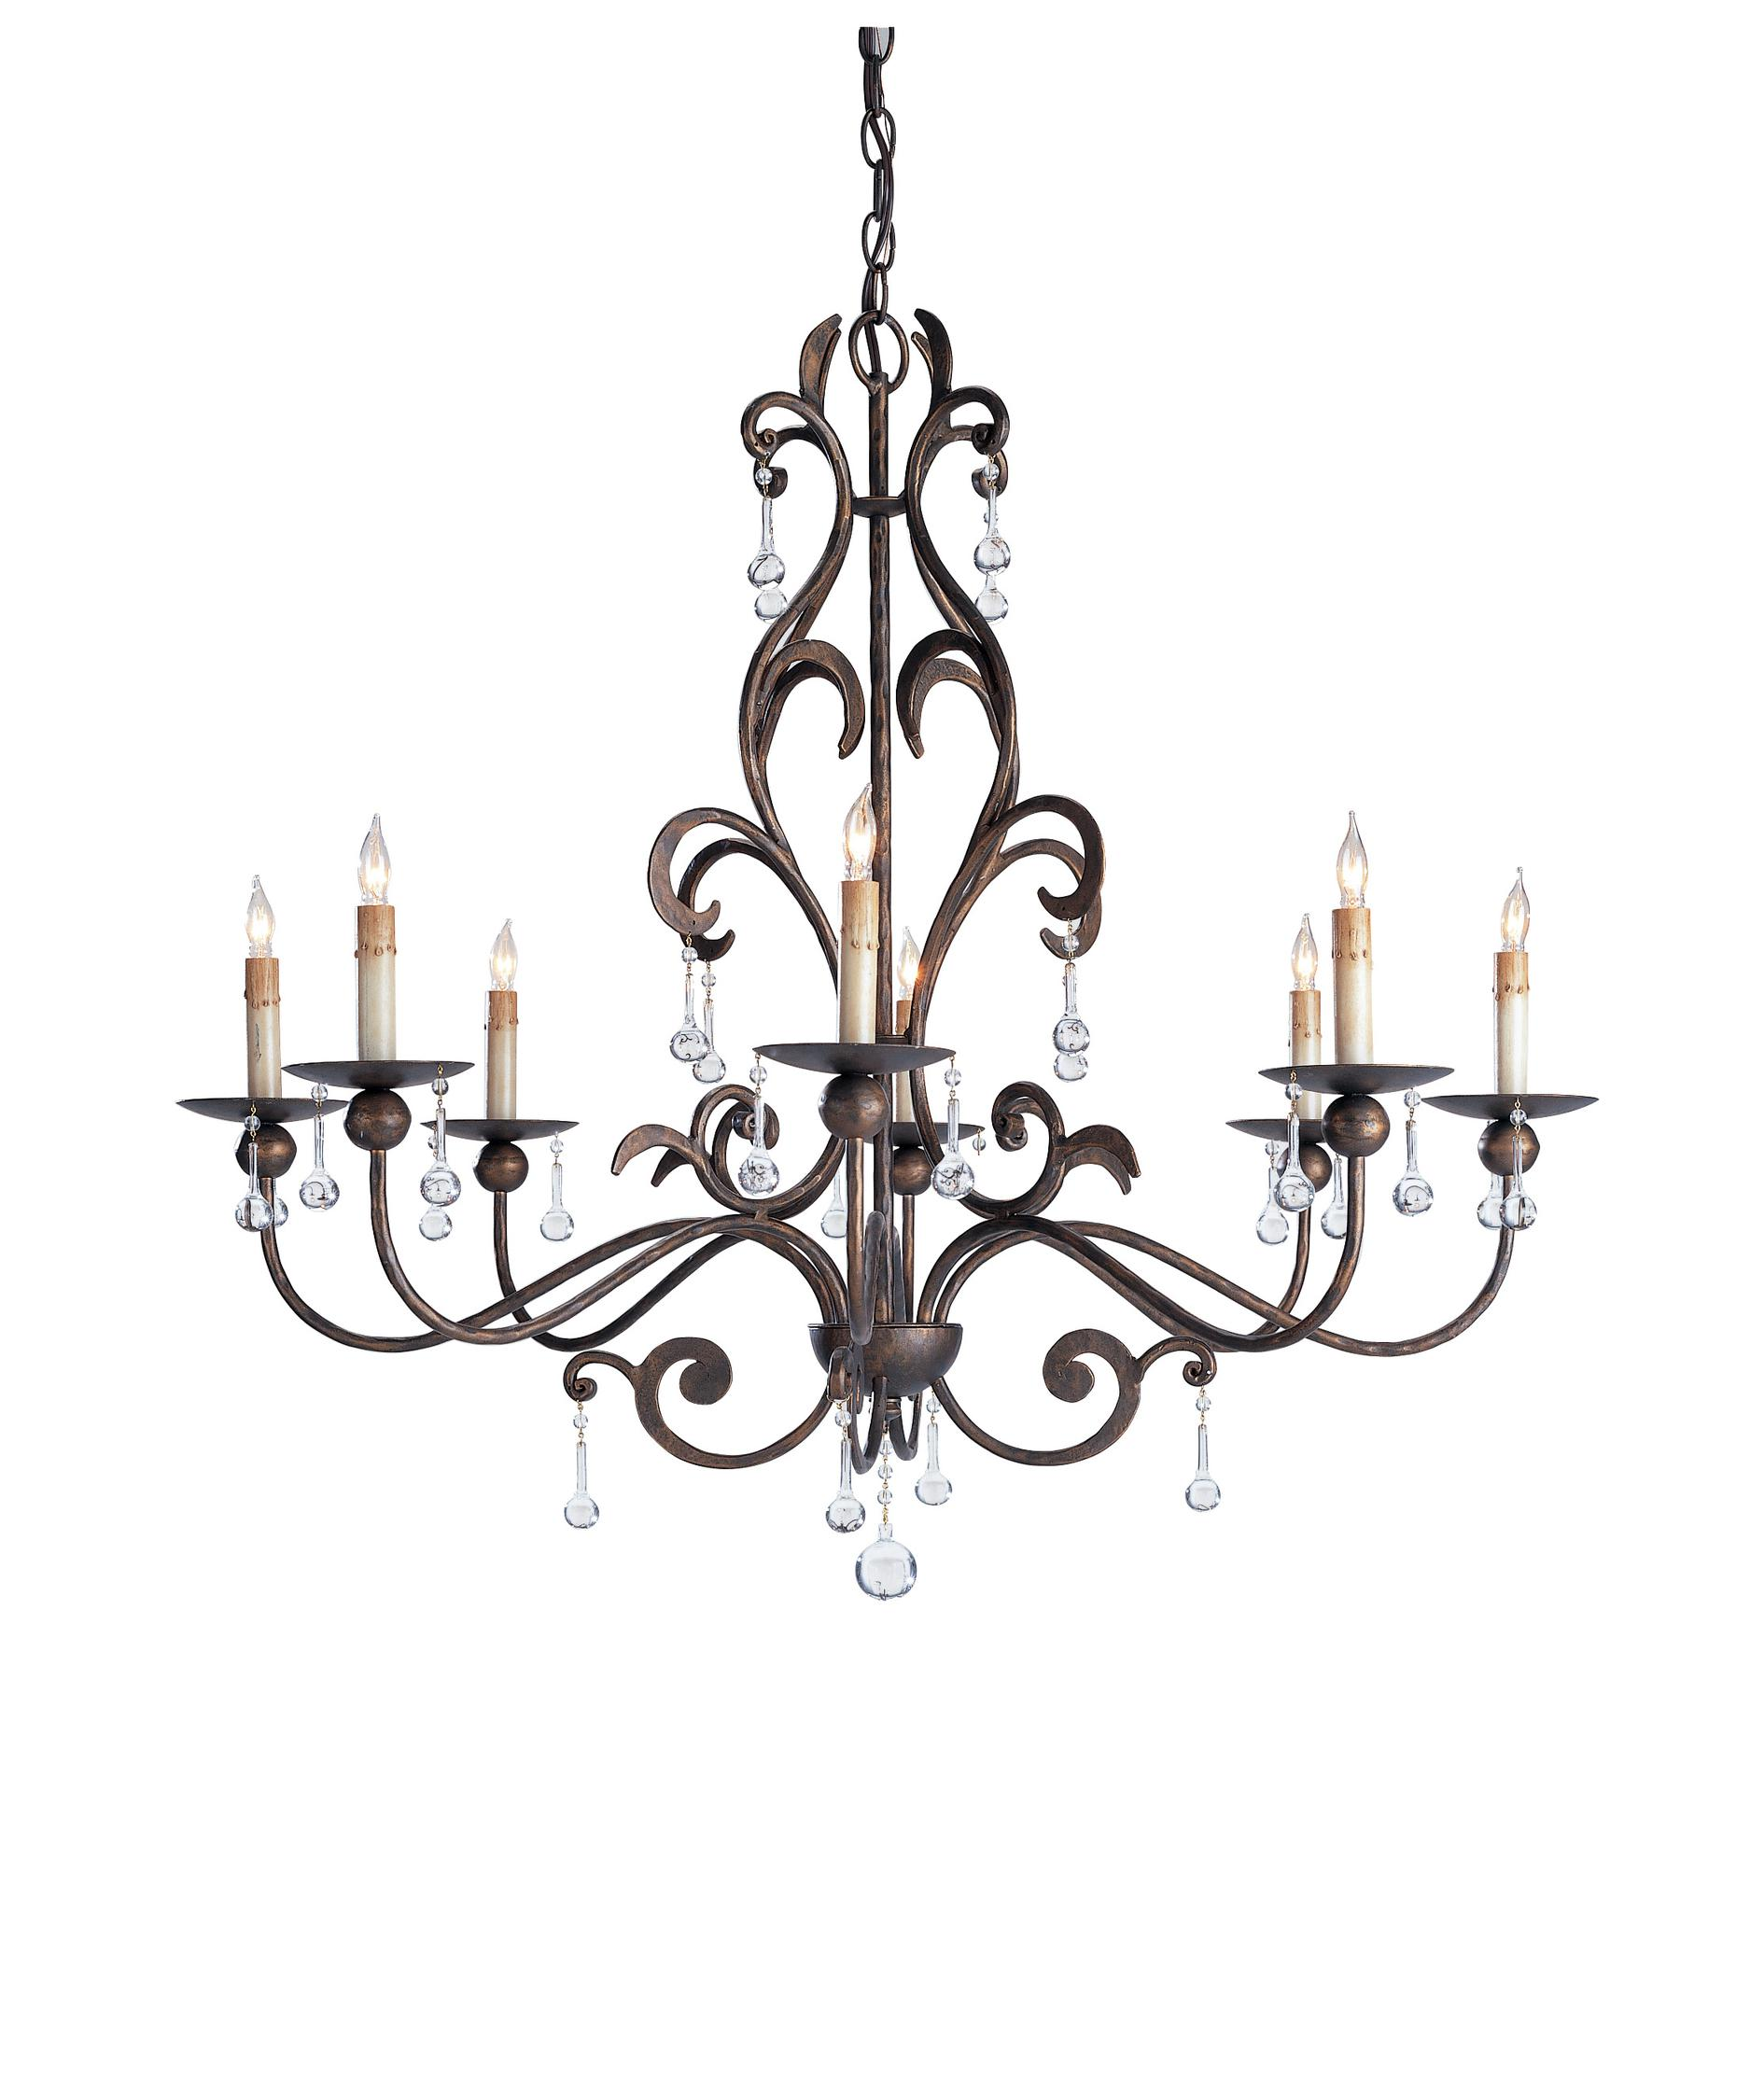 Currey and Company Pompeii 35 Inch Wide 8 Light Chandelier – Currey and Company Lighting Chandeliers